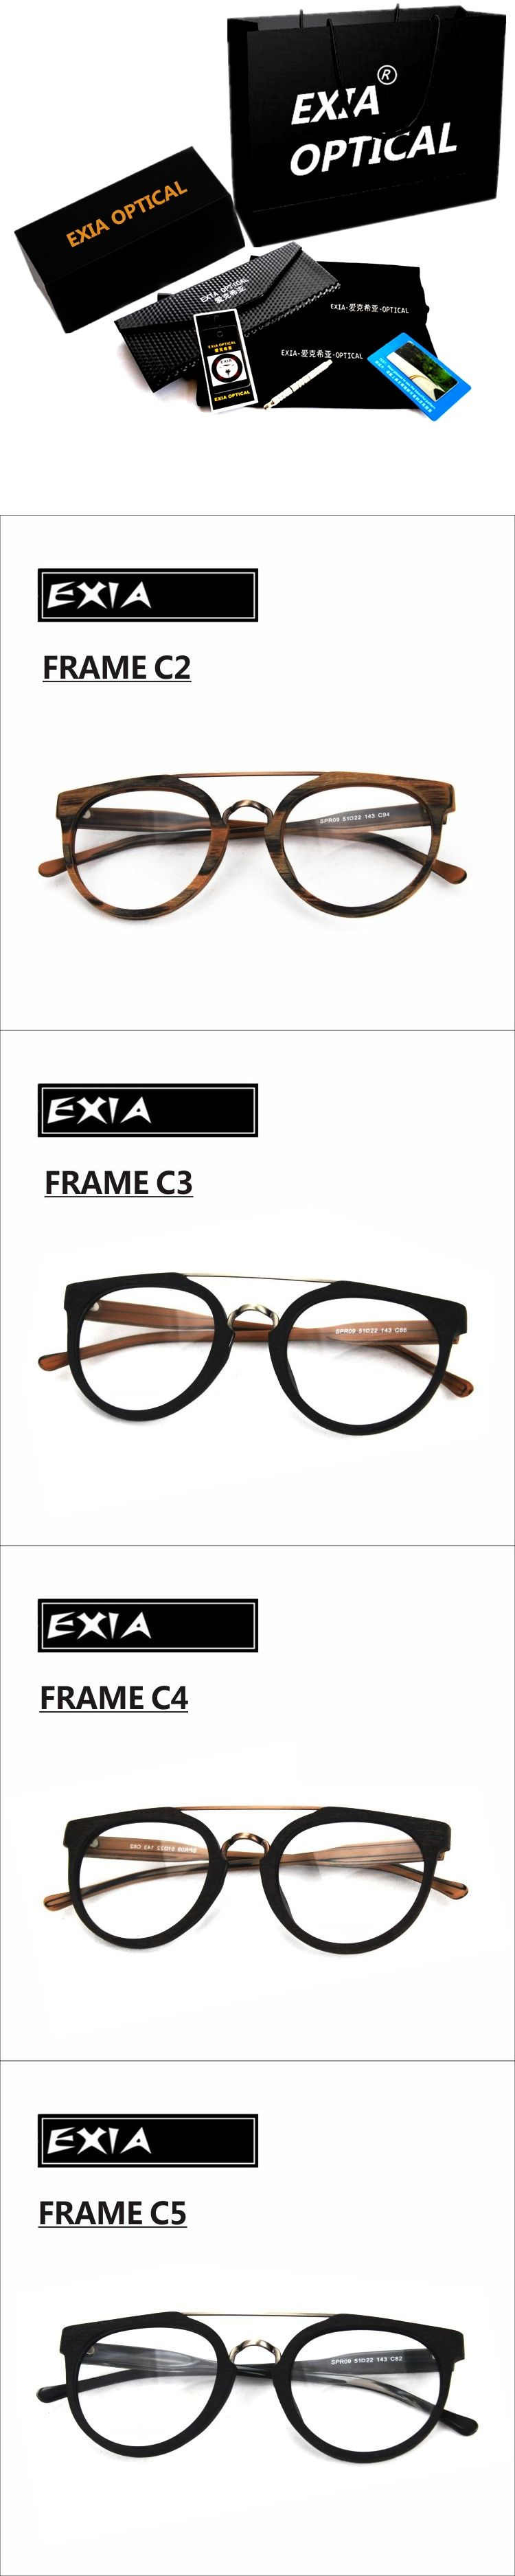 c434ccc04ac Glasses Frames Acetate High Quality Design Unisex Can be with RX Ophthalmic  Lenses EXIA OPTICAL KD